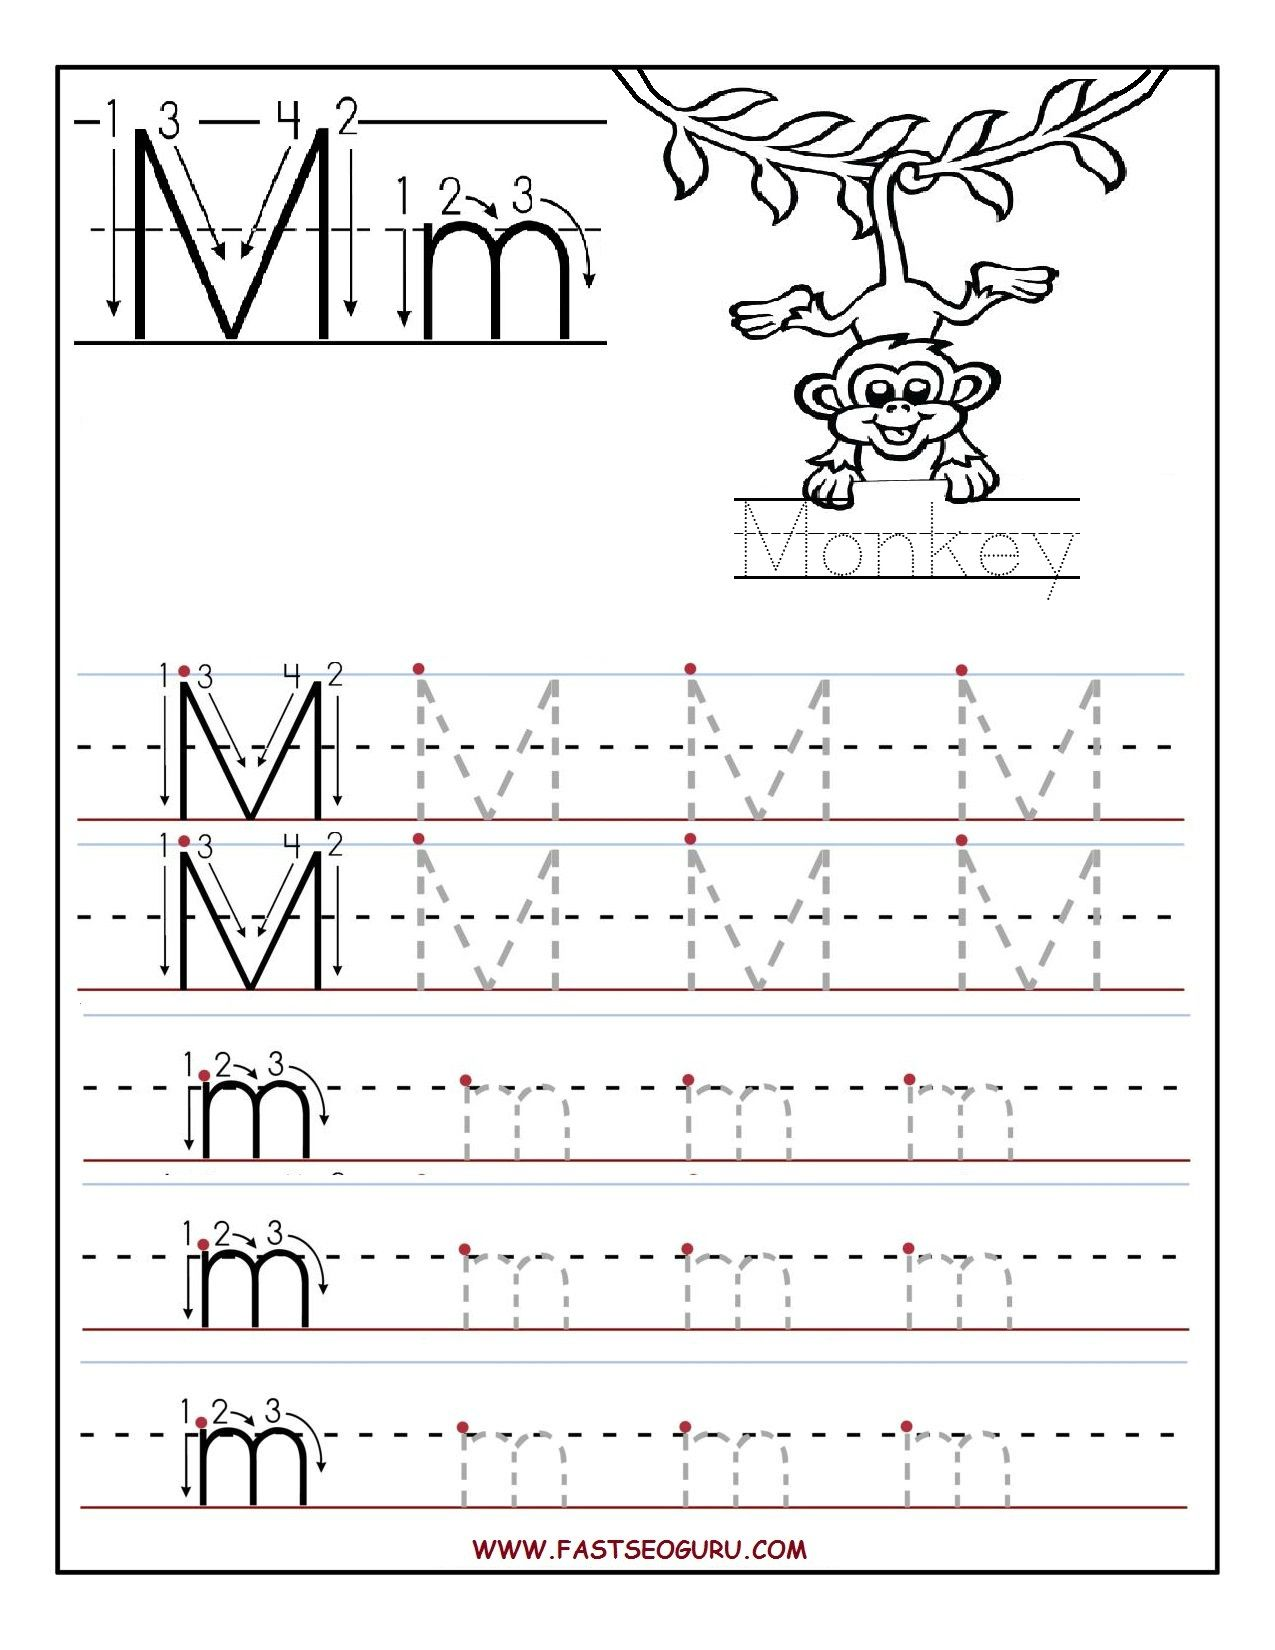 Worksheets Letter M Worksheets For Kindergarten printable letter m tracing worksheets for preschool bobbi likes preschool